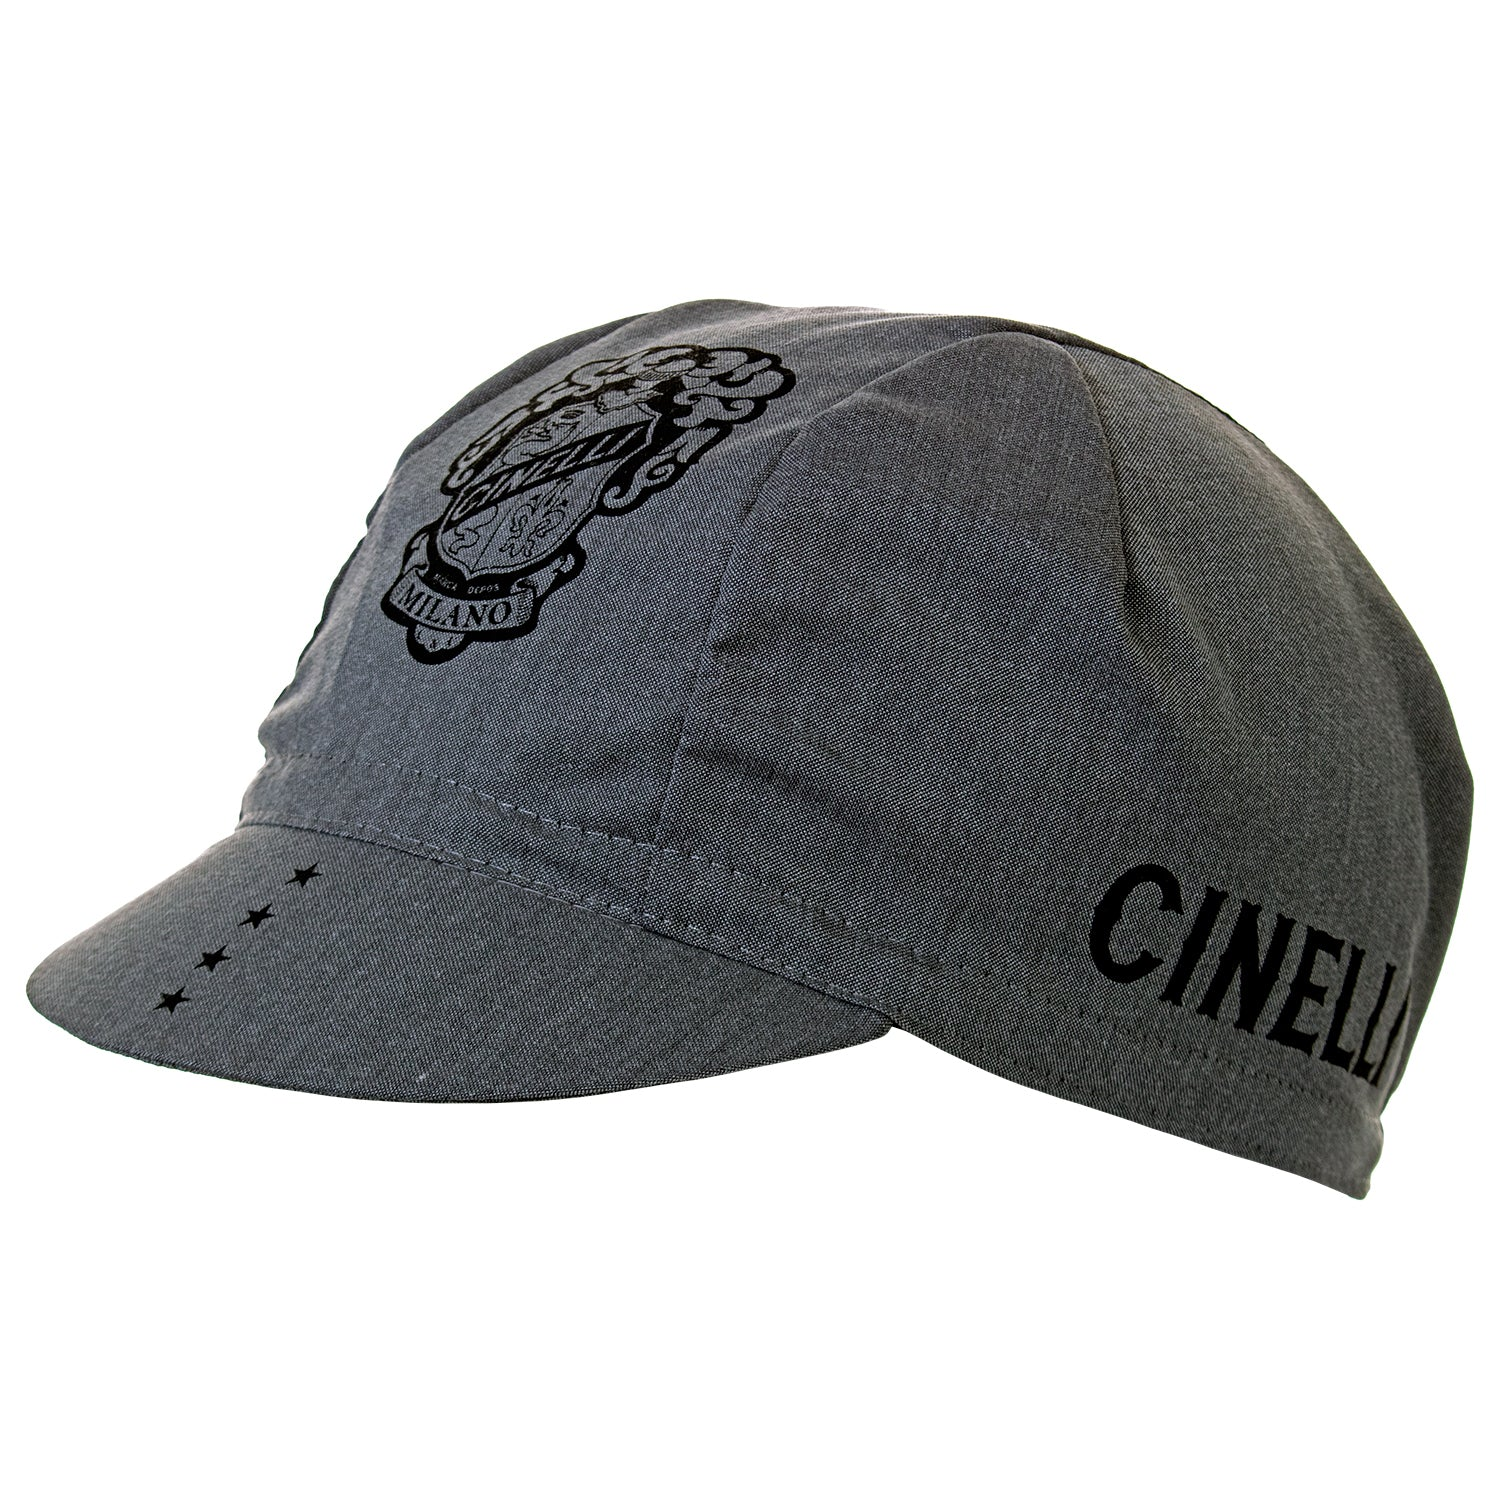 Cinelli Crest Grey Cotton Cycling Cap